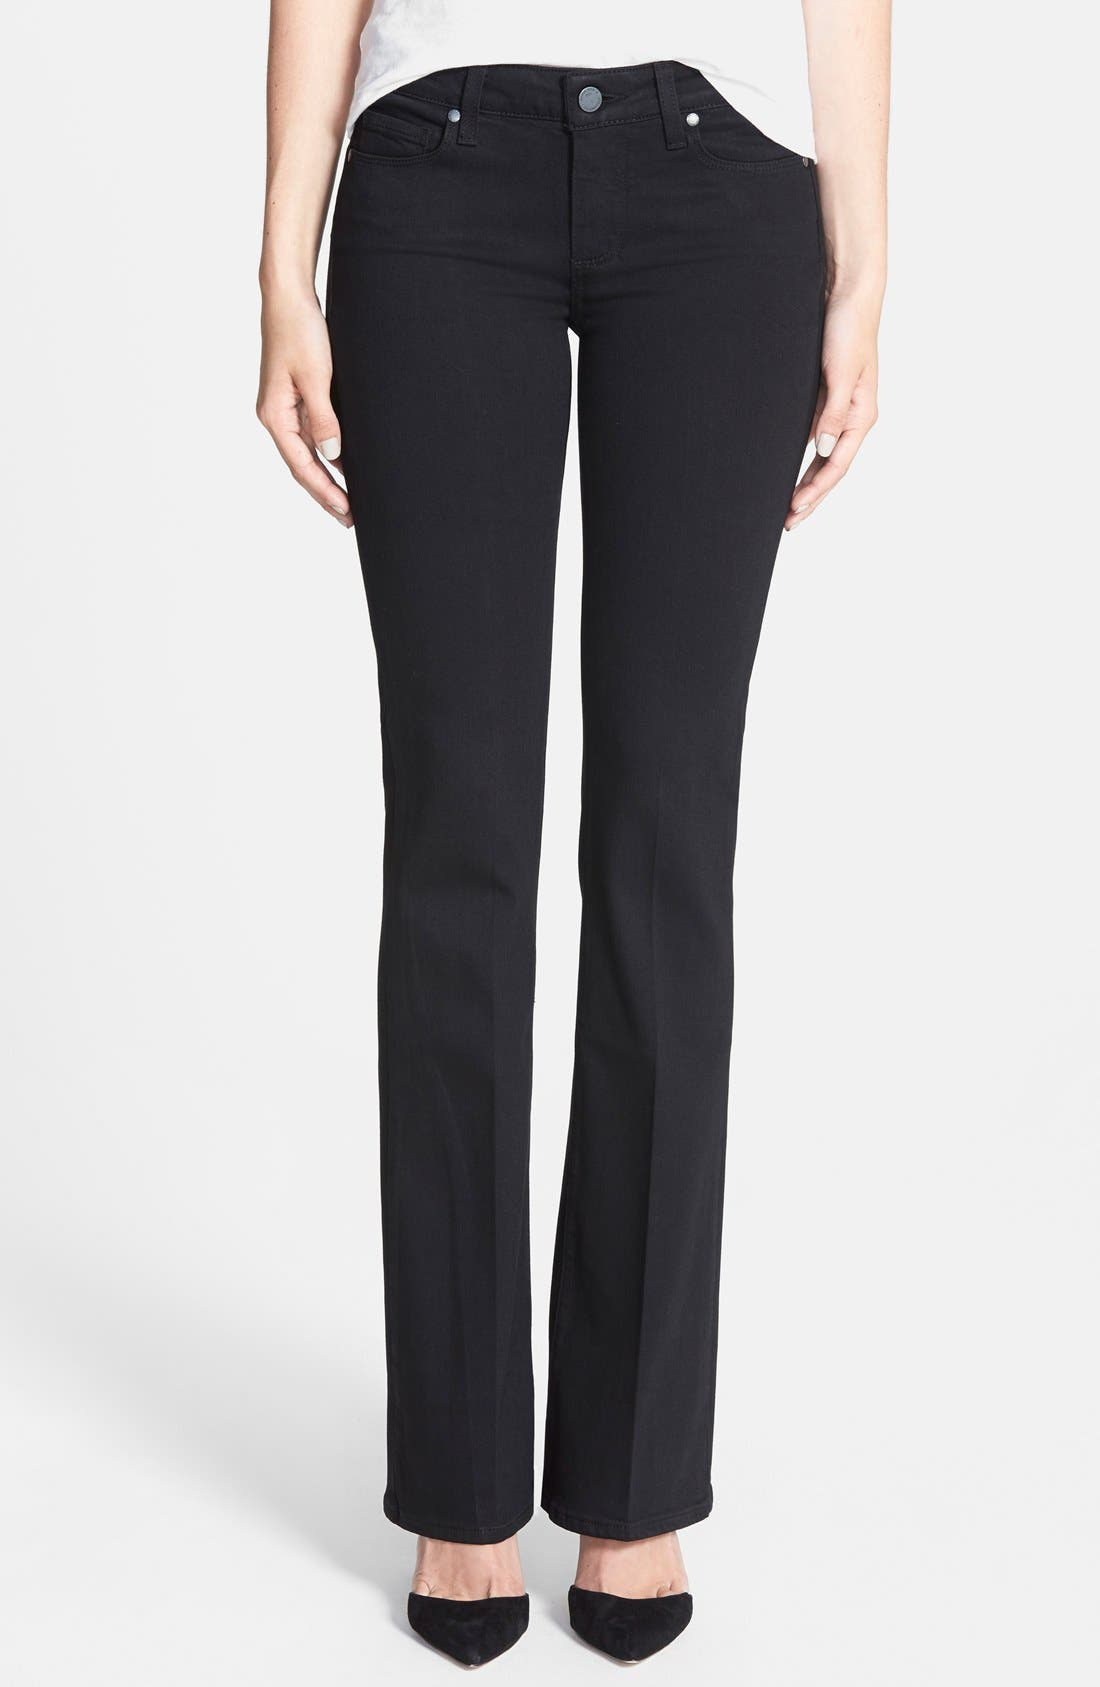 Alternate Image 1 Selected - PAIGE Transcend - Skyline Bootcut Jeans (Black Shadow)